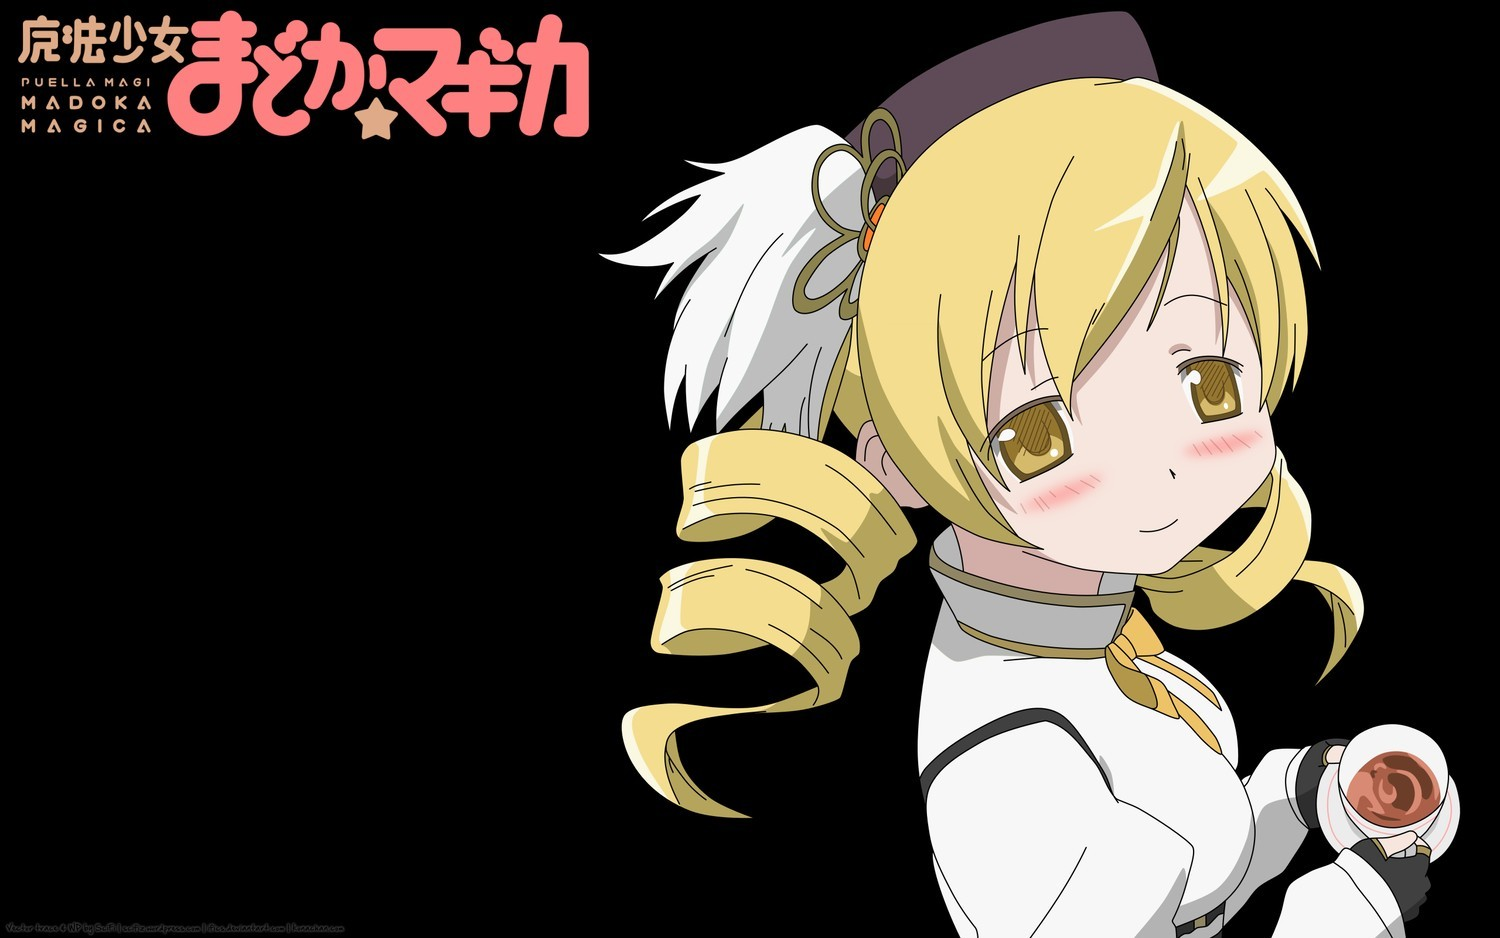 blondes tea yellow eyes HD Wallpaper